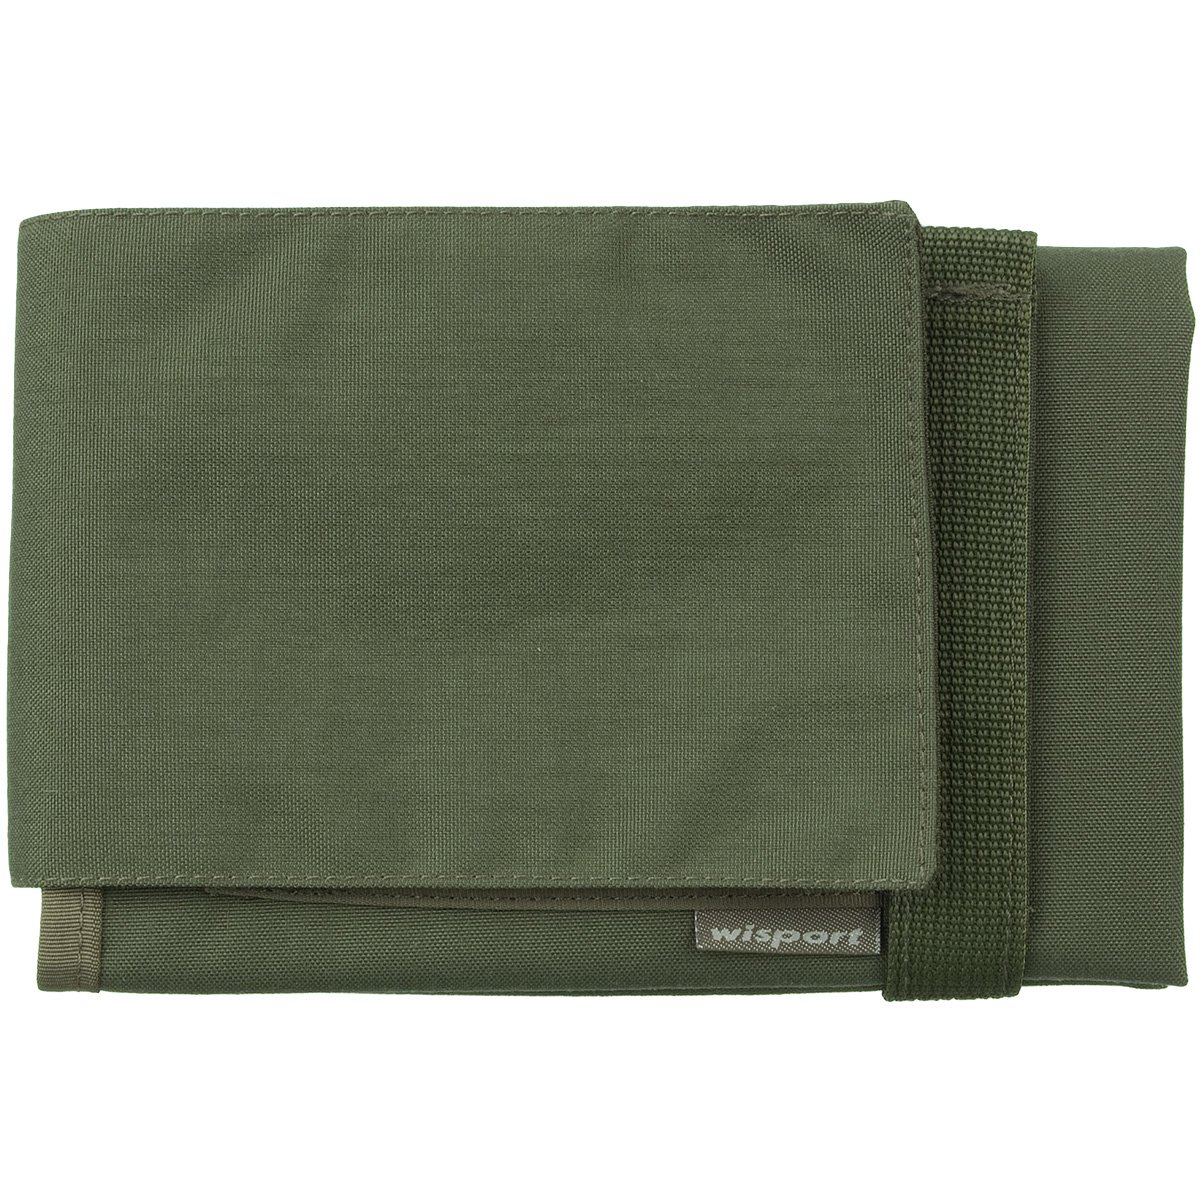 Wisport Linx Map Case Olive Green